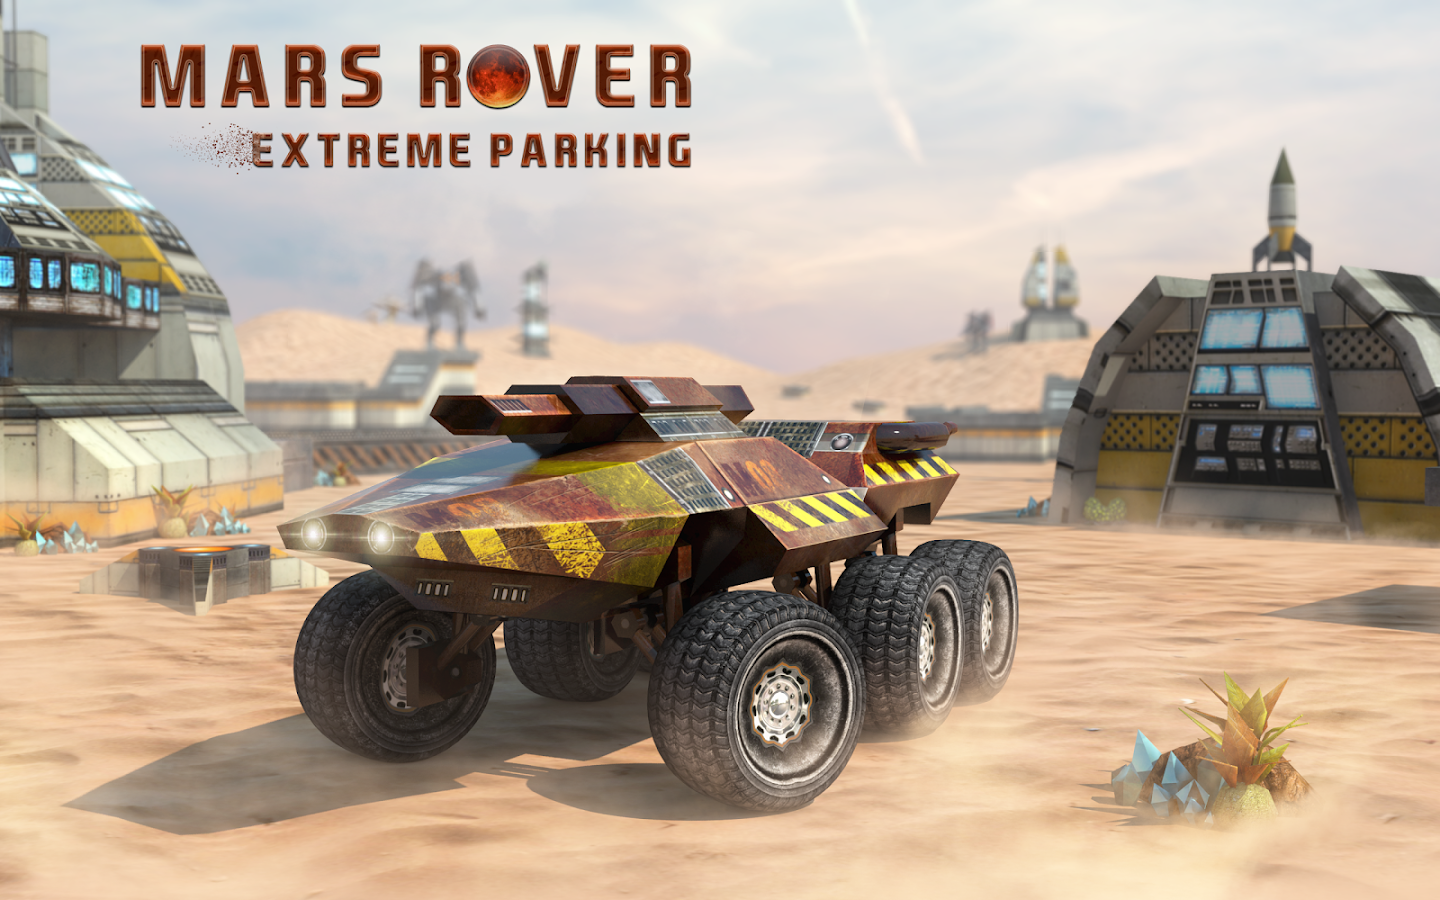 space exploration rover - photo #25